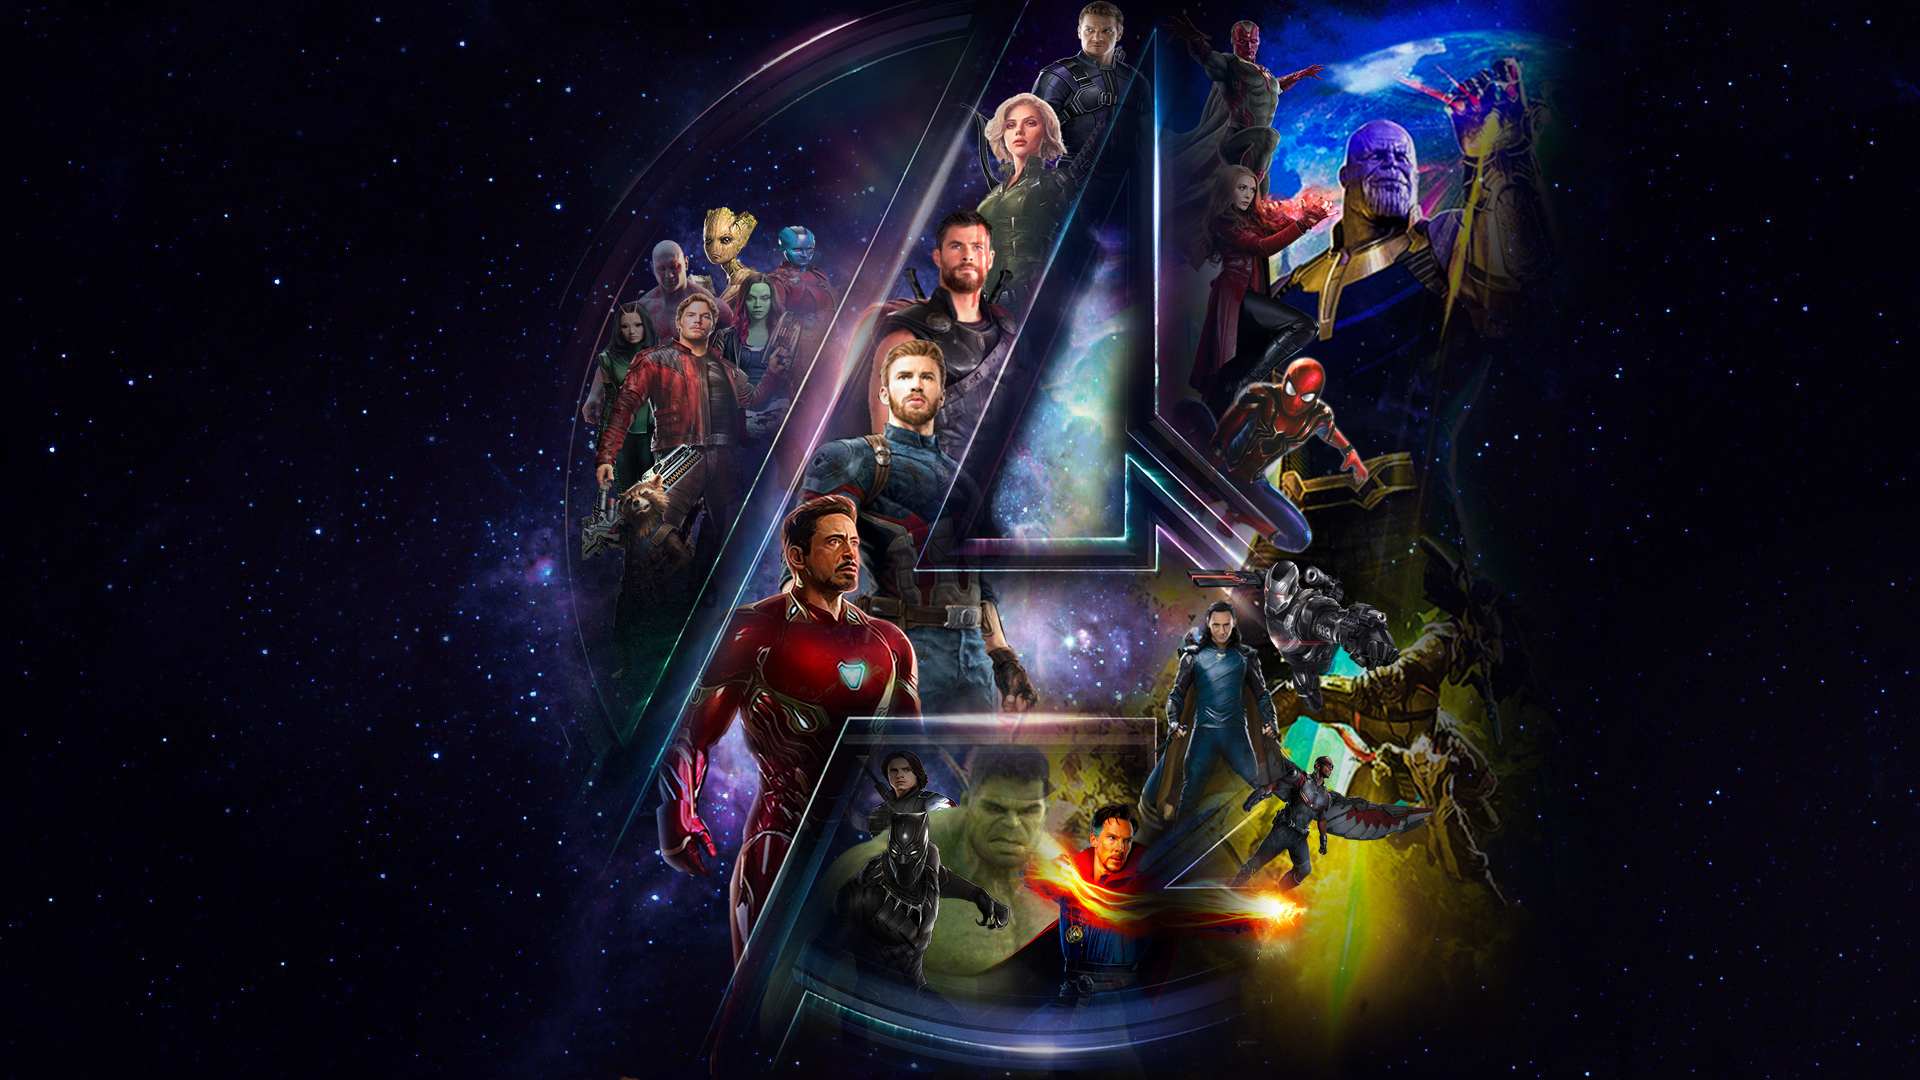 Avengers Infinity War HD Wallpaper Background Image 1920x1080 1920x1080